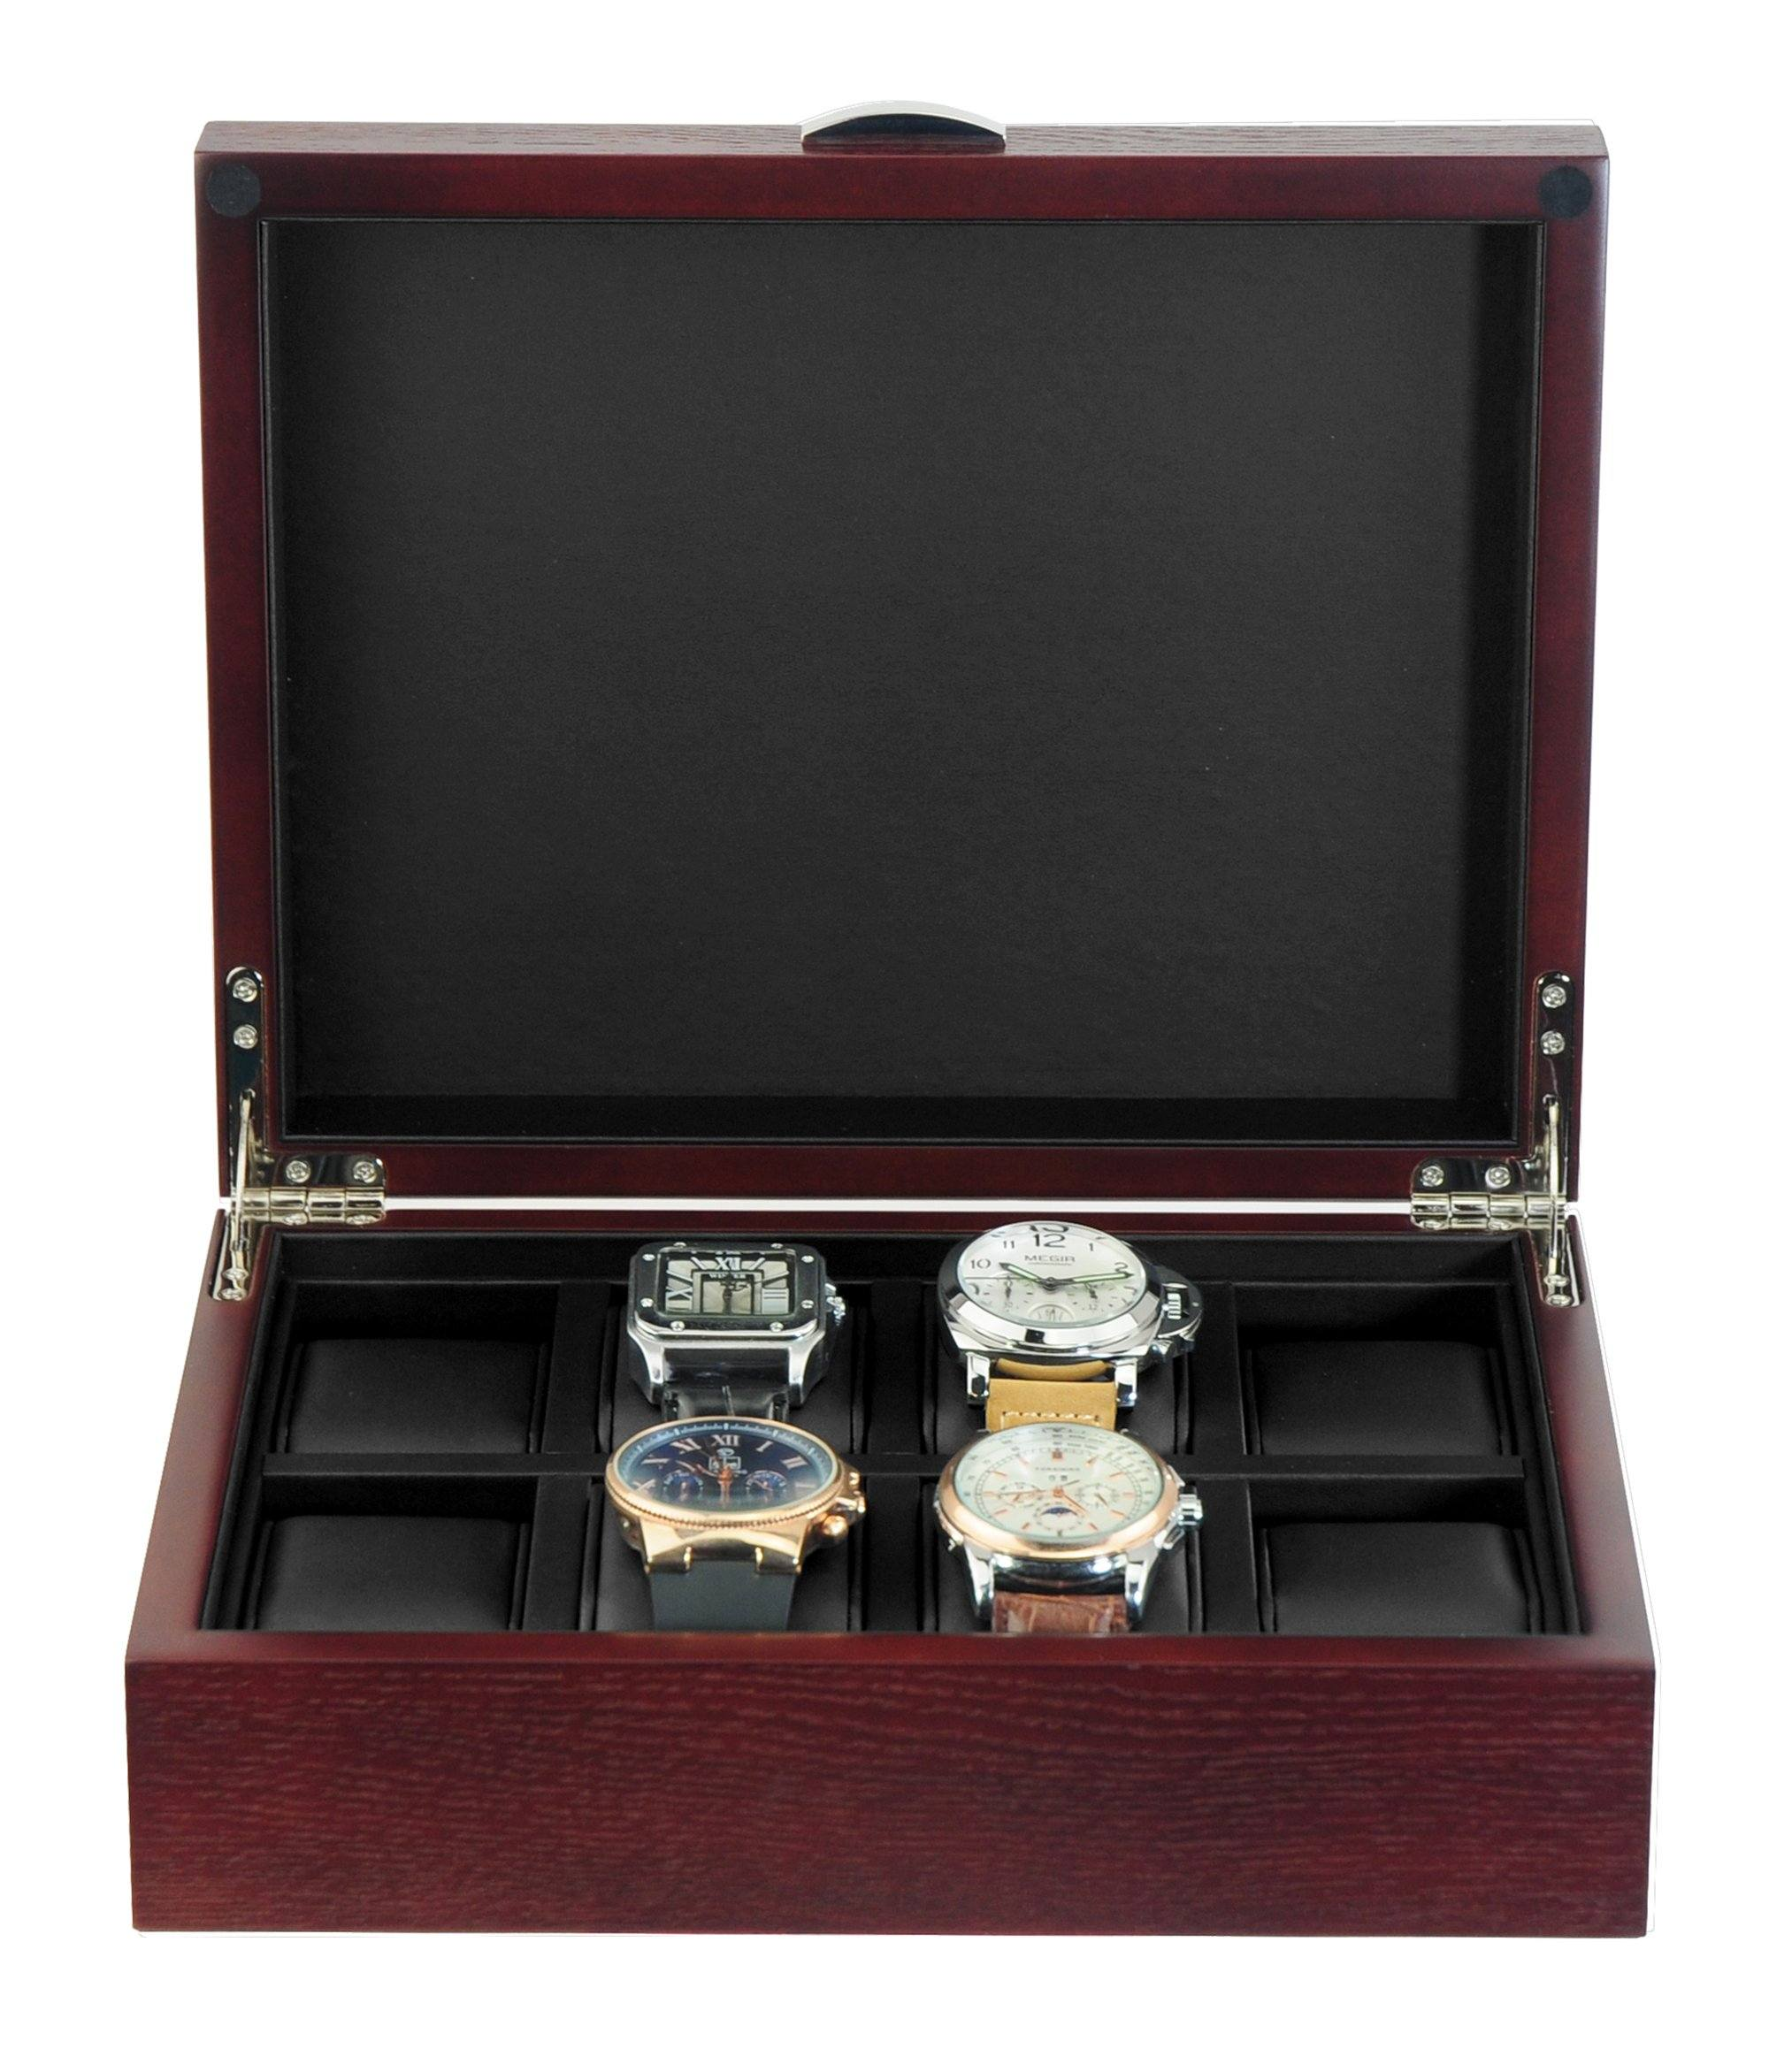 Natural Cherry Wooden Watch Box for 8 Watches Watch Boxes Clinks Australia Default